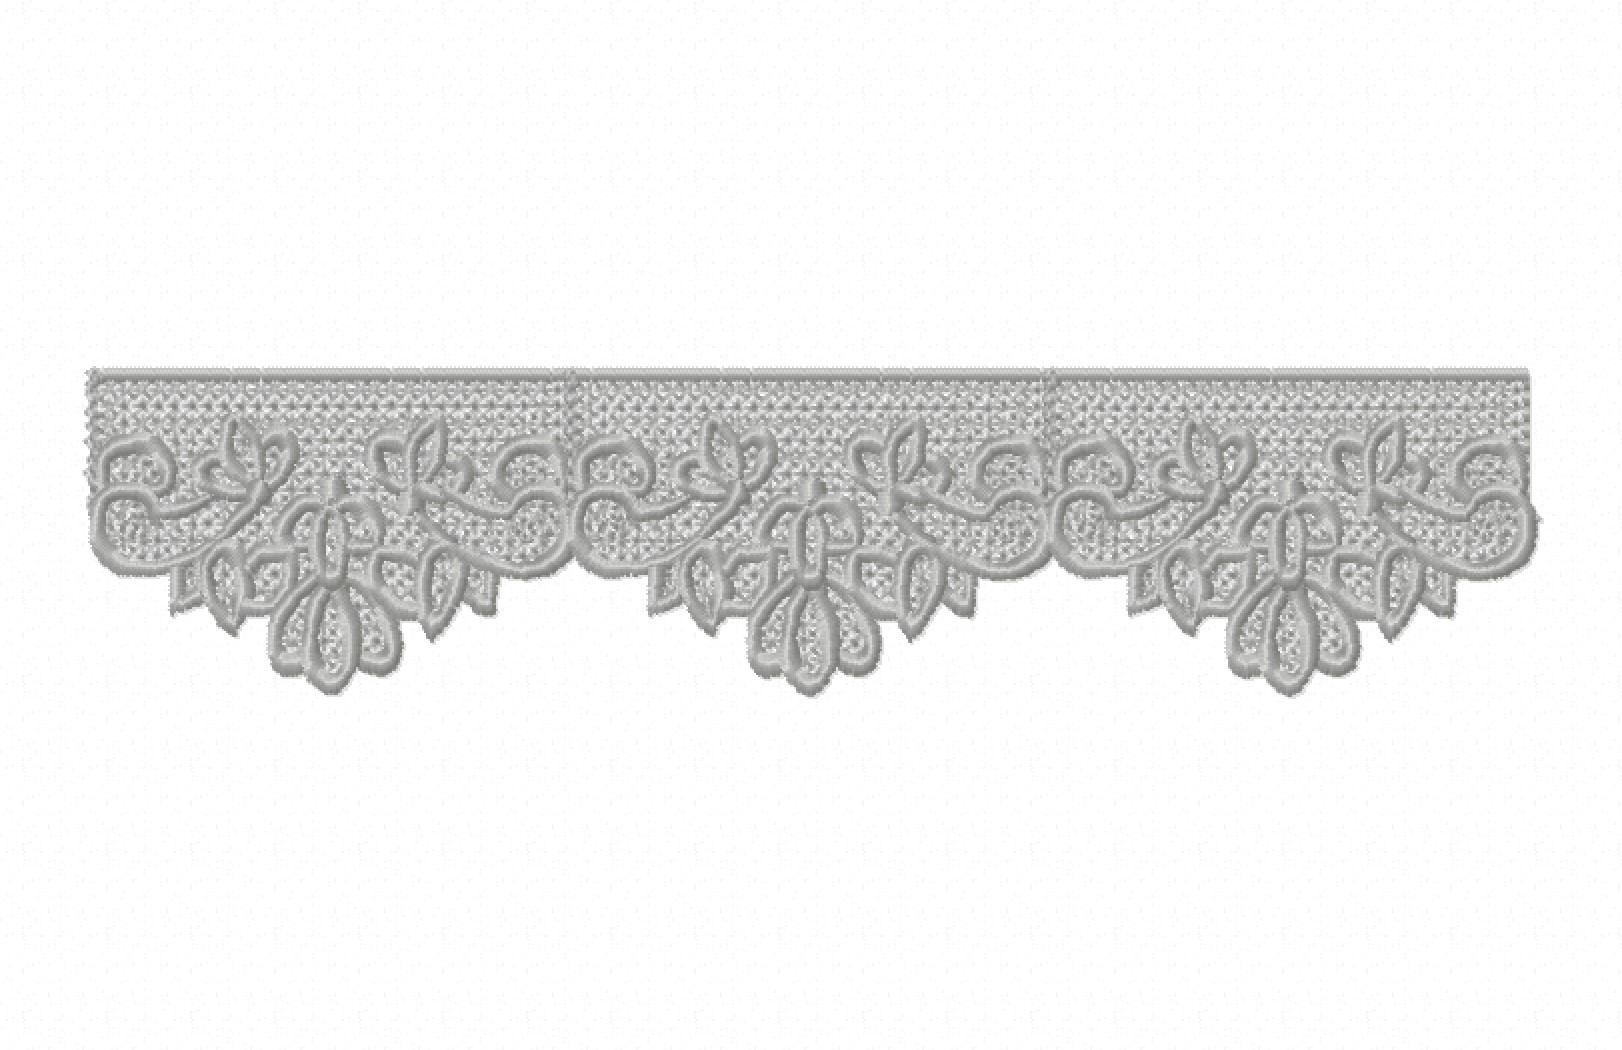 Freestanding Lace Trim & Medallion-8